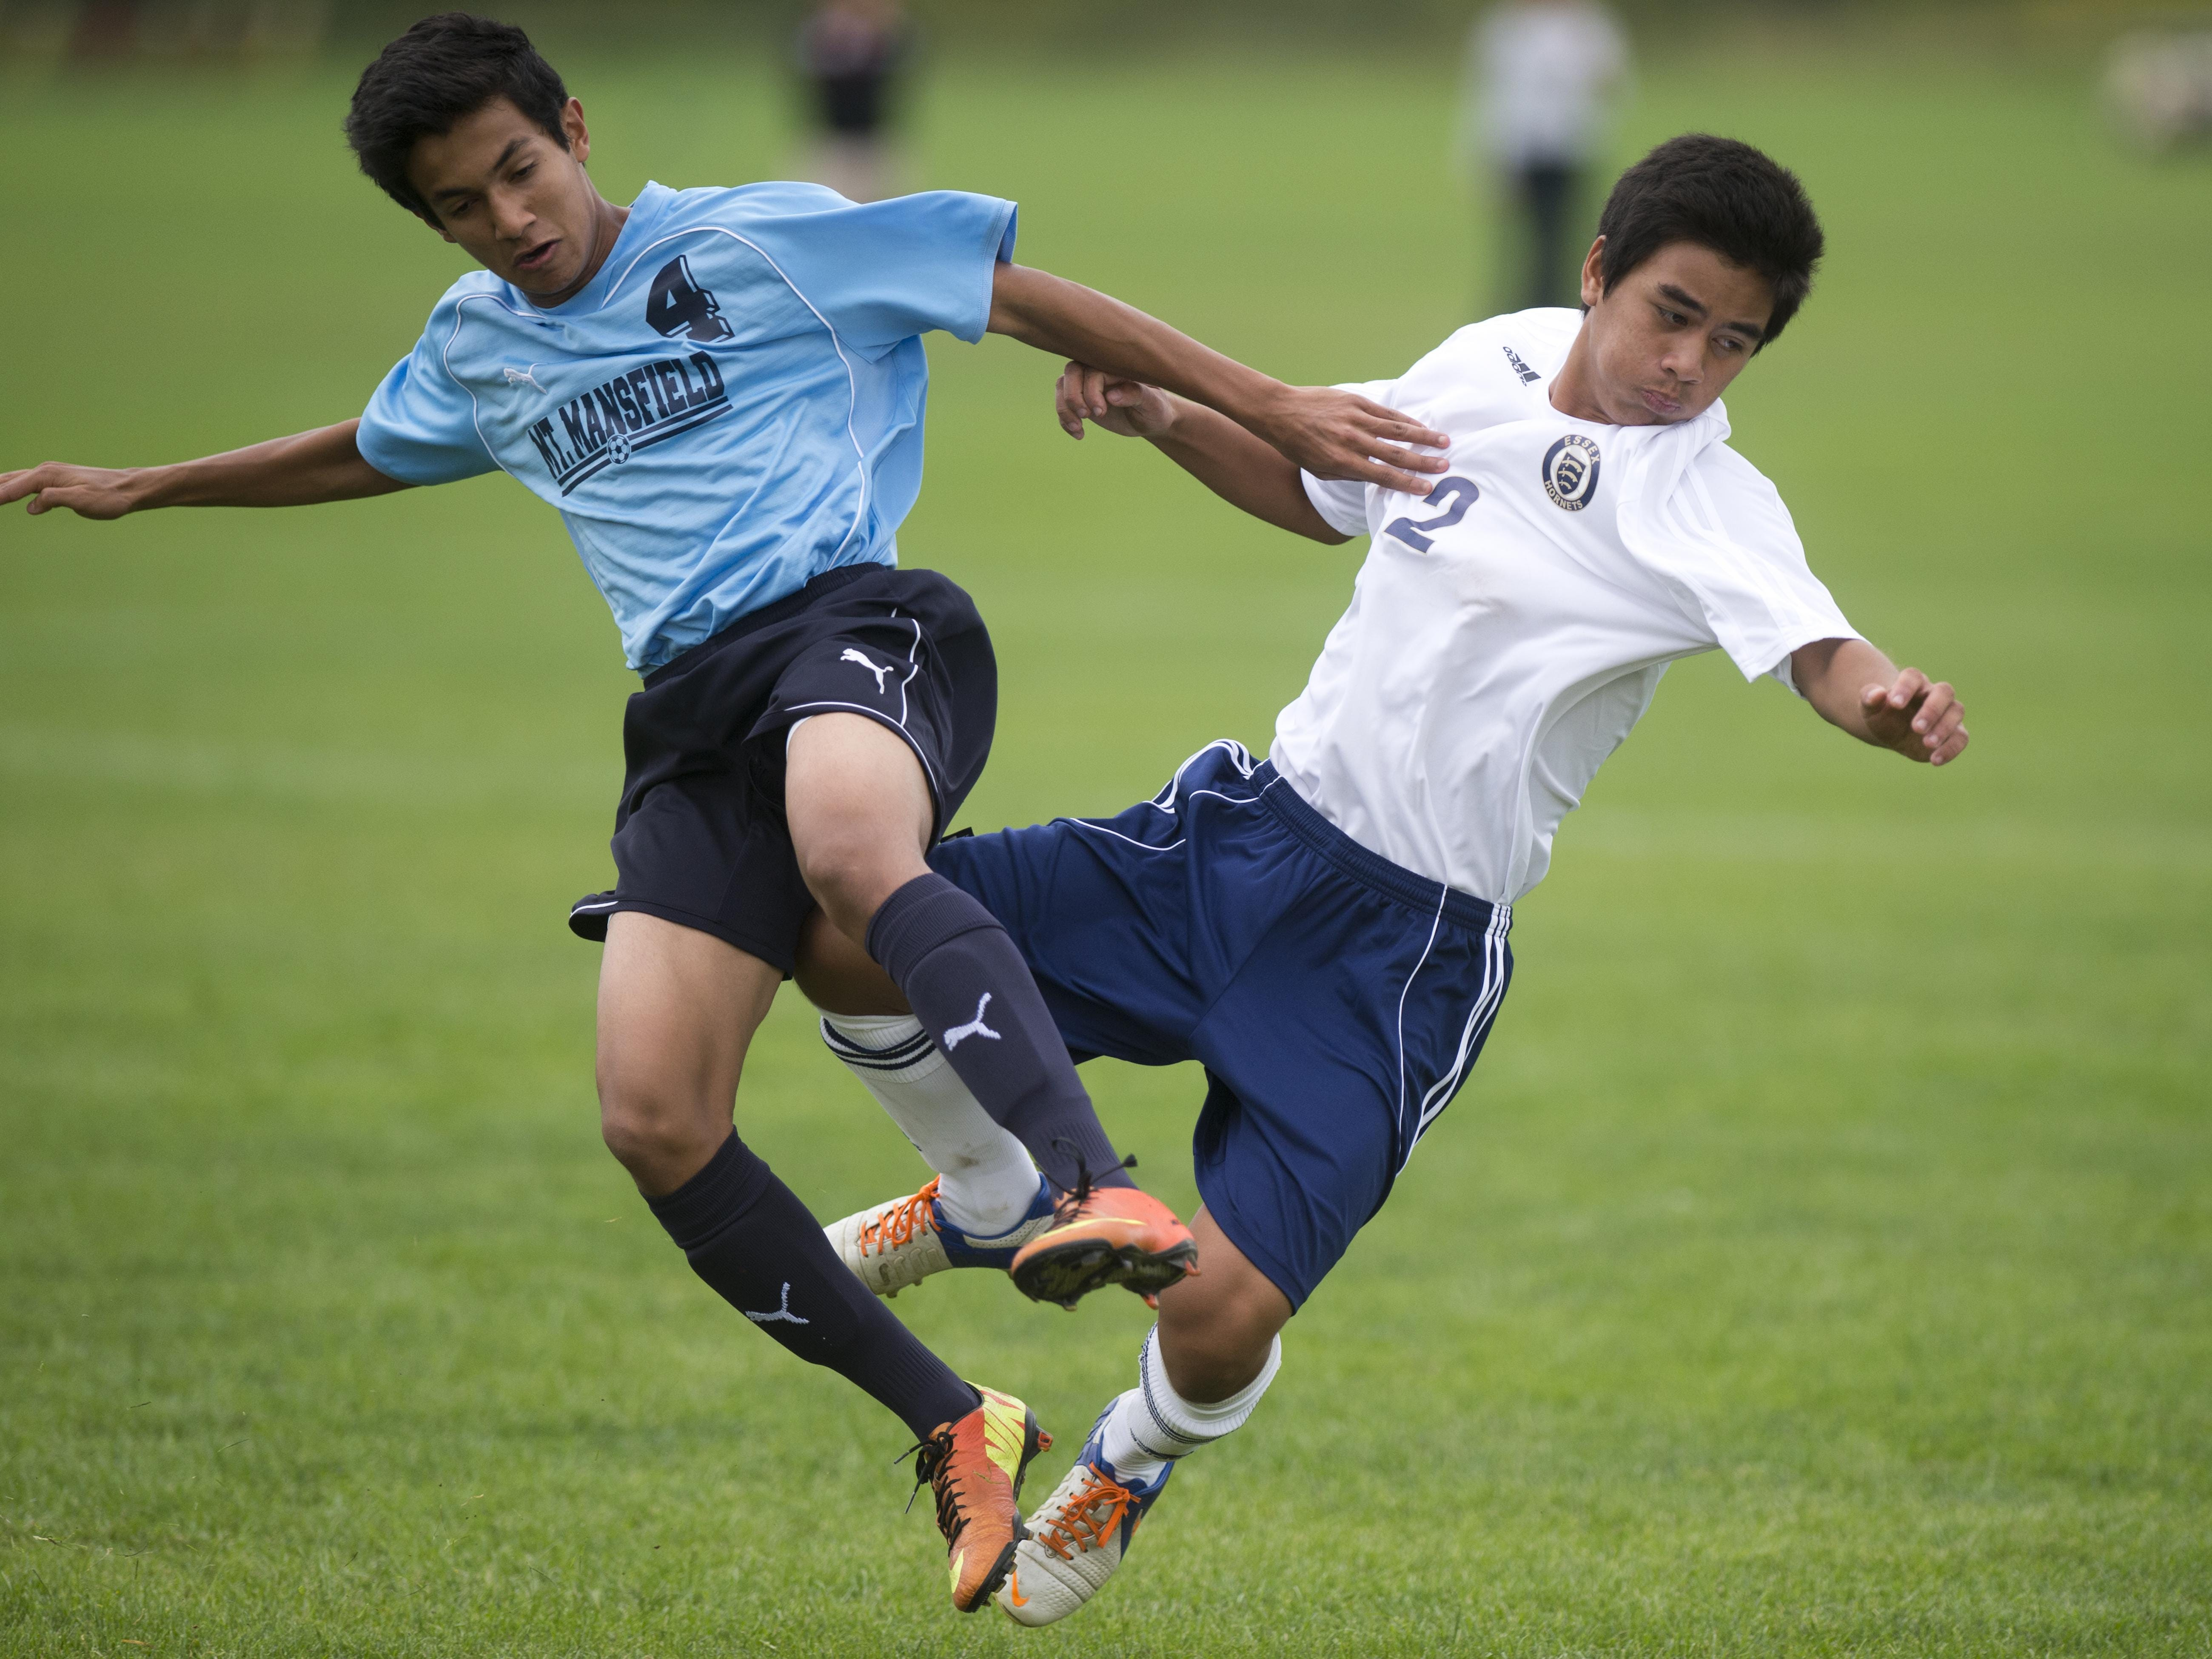 From left, MMU's #4 Kieran Bhave and Essex #2 Hunter Pelkey bounce off each other are fighting for the ball during Tuesday's soccer match at Essex High School.